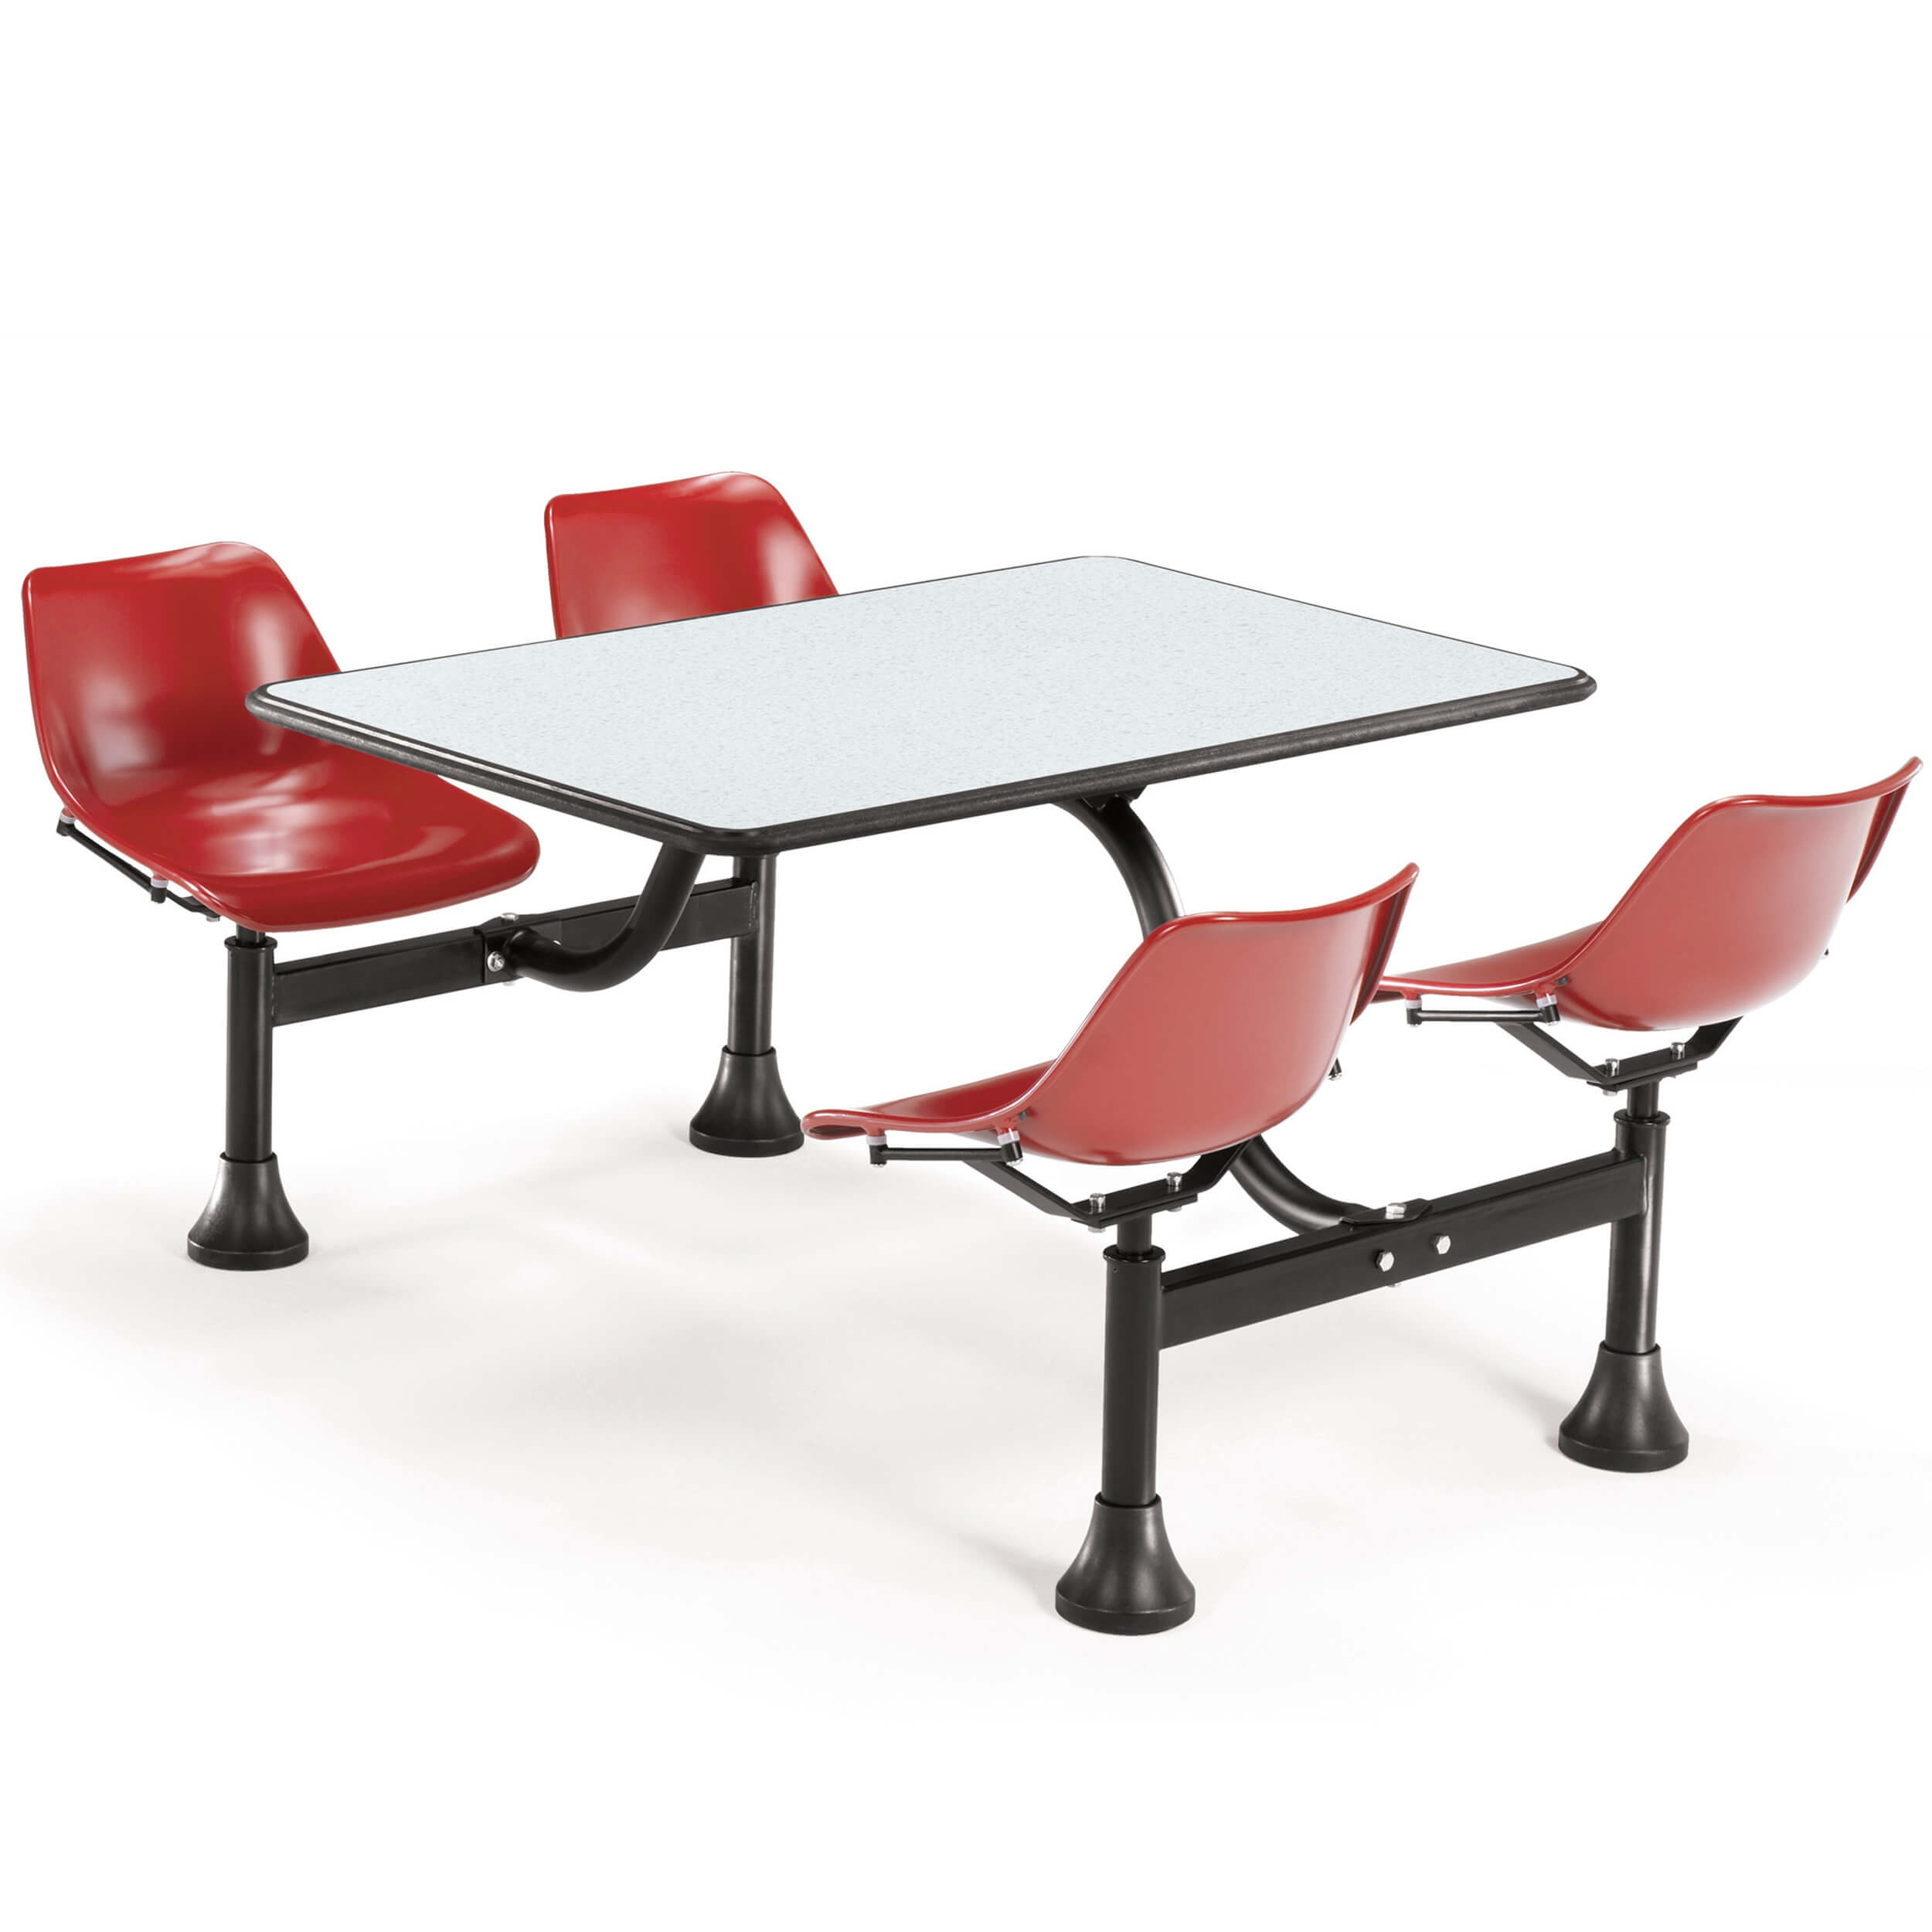 Dining booth CUB 1002 RED BGNB OFM